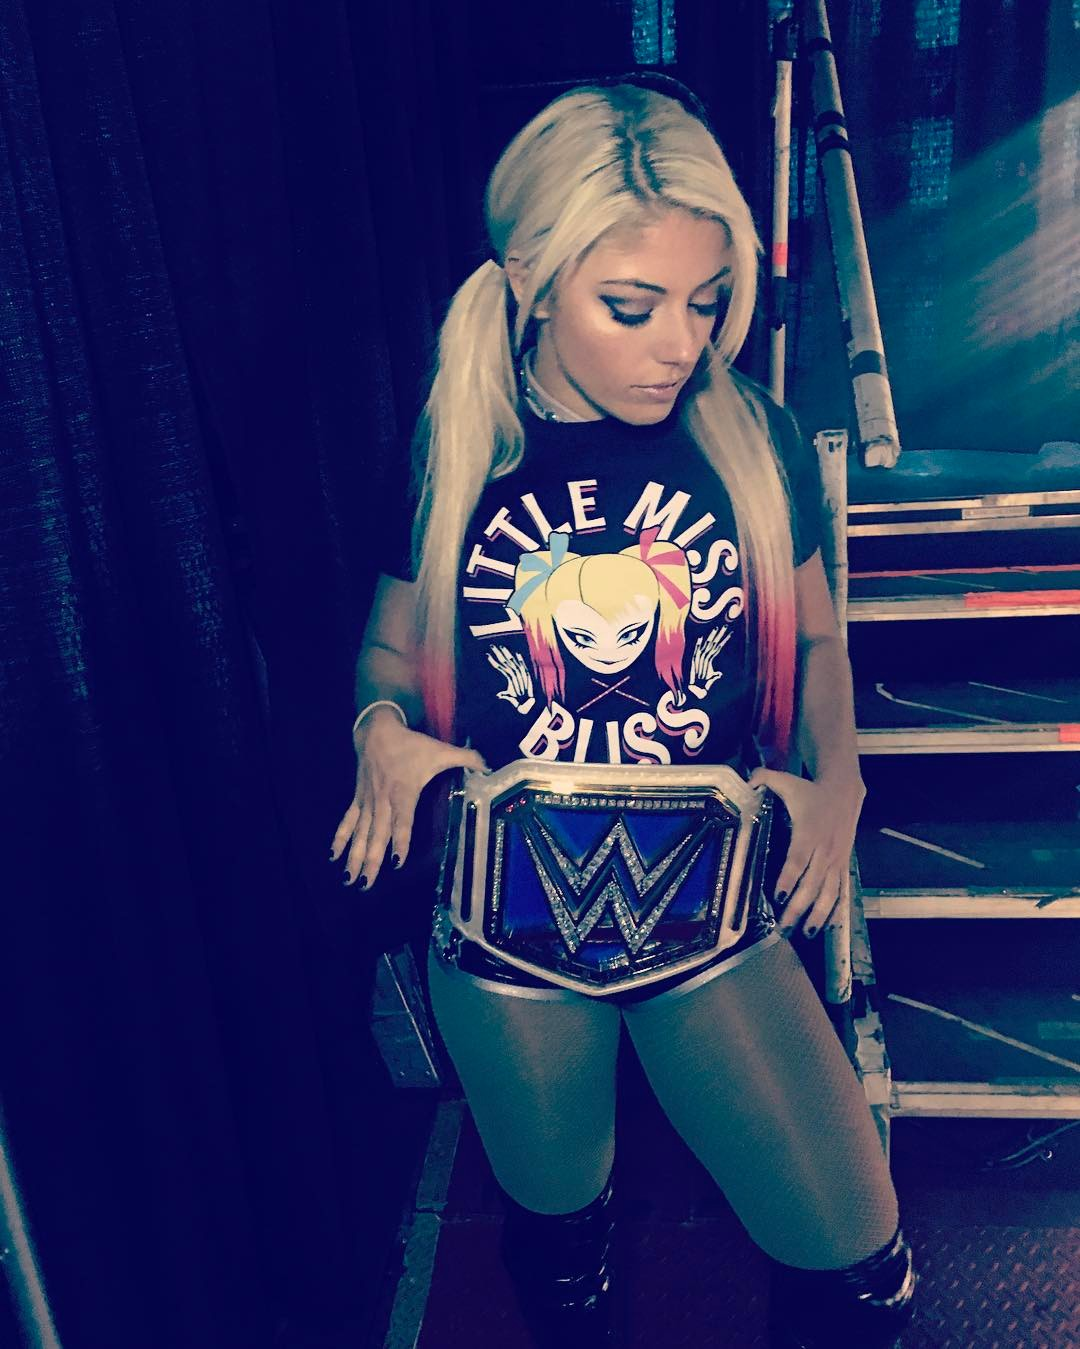 Alexa Bliss 2020 : Alexa Bliss – Instagram and social media-42